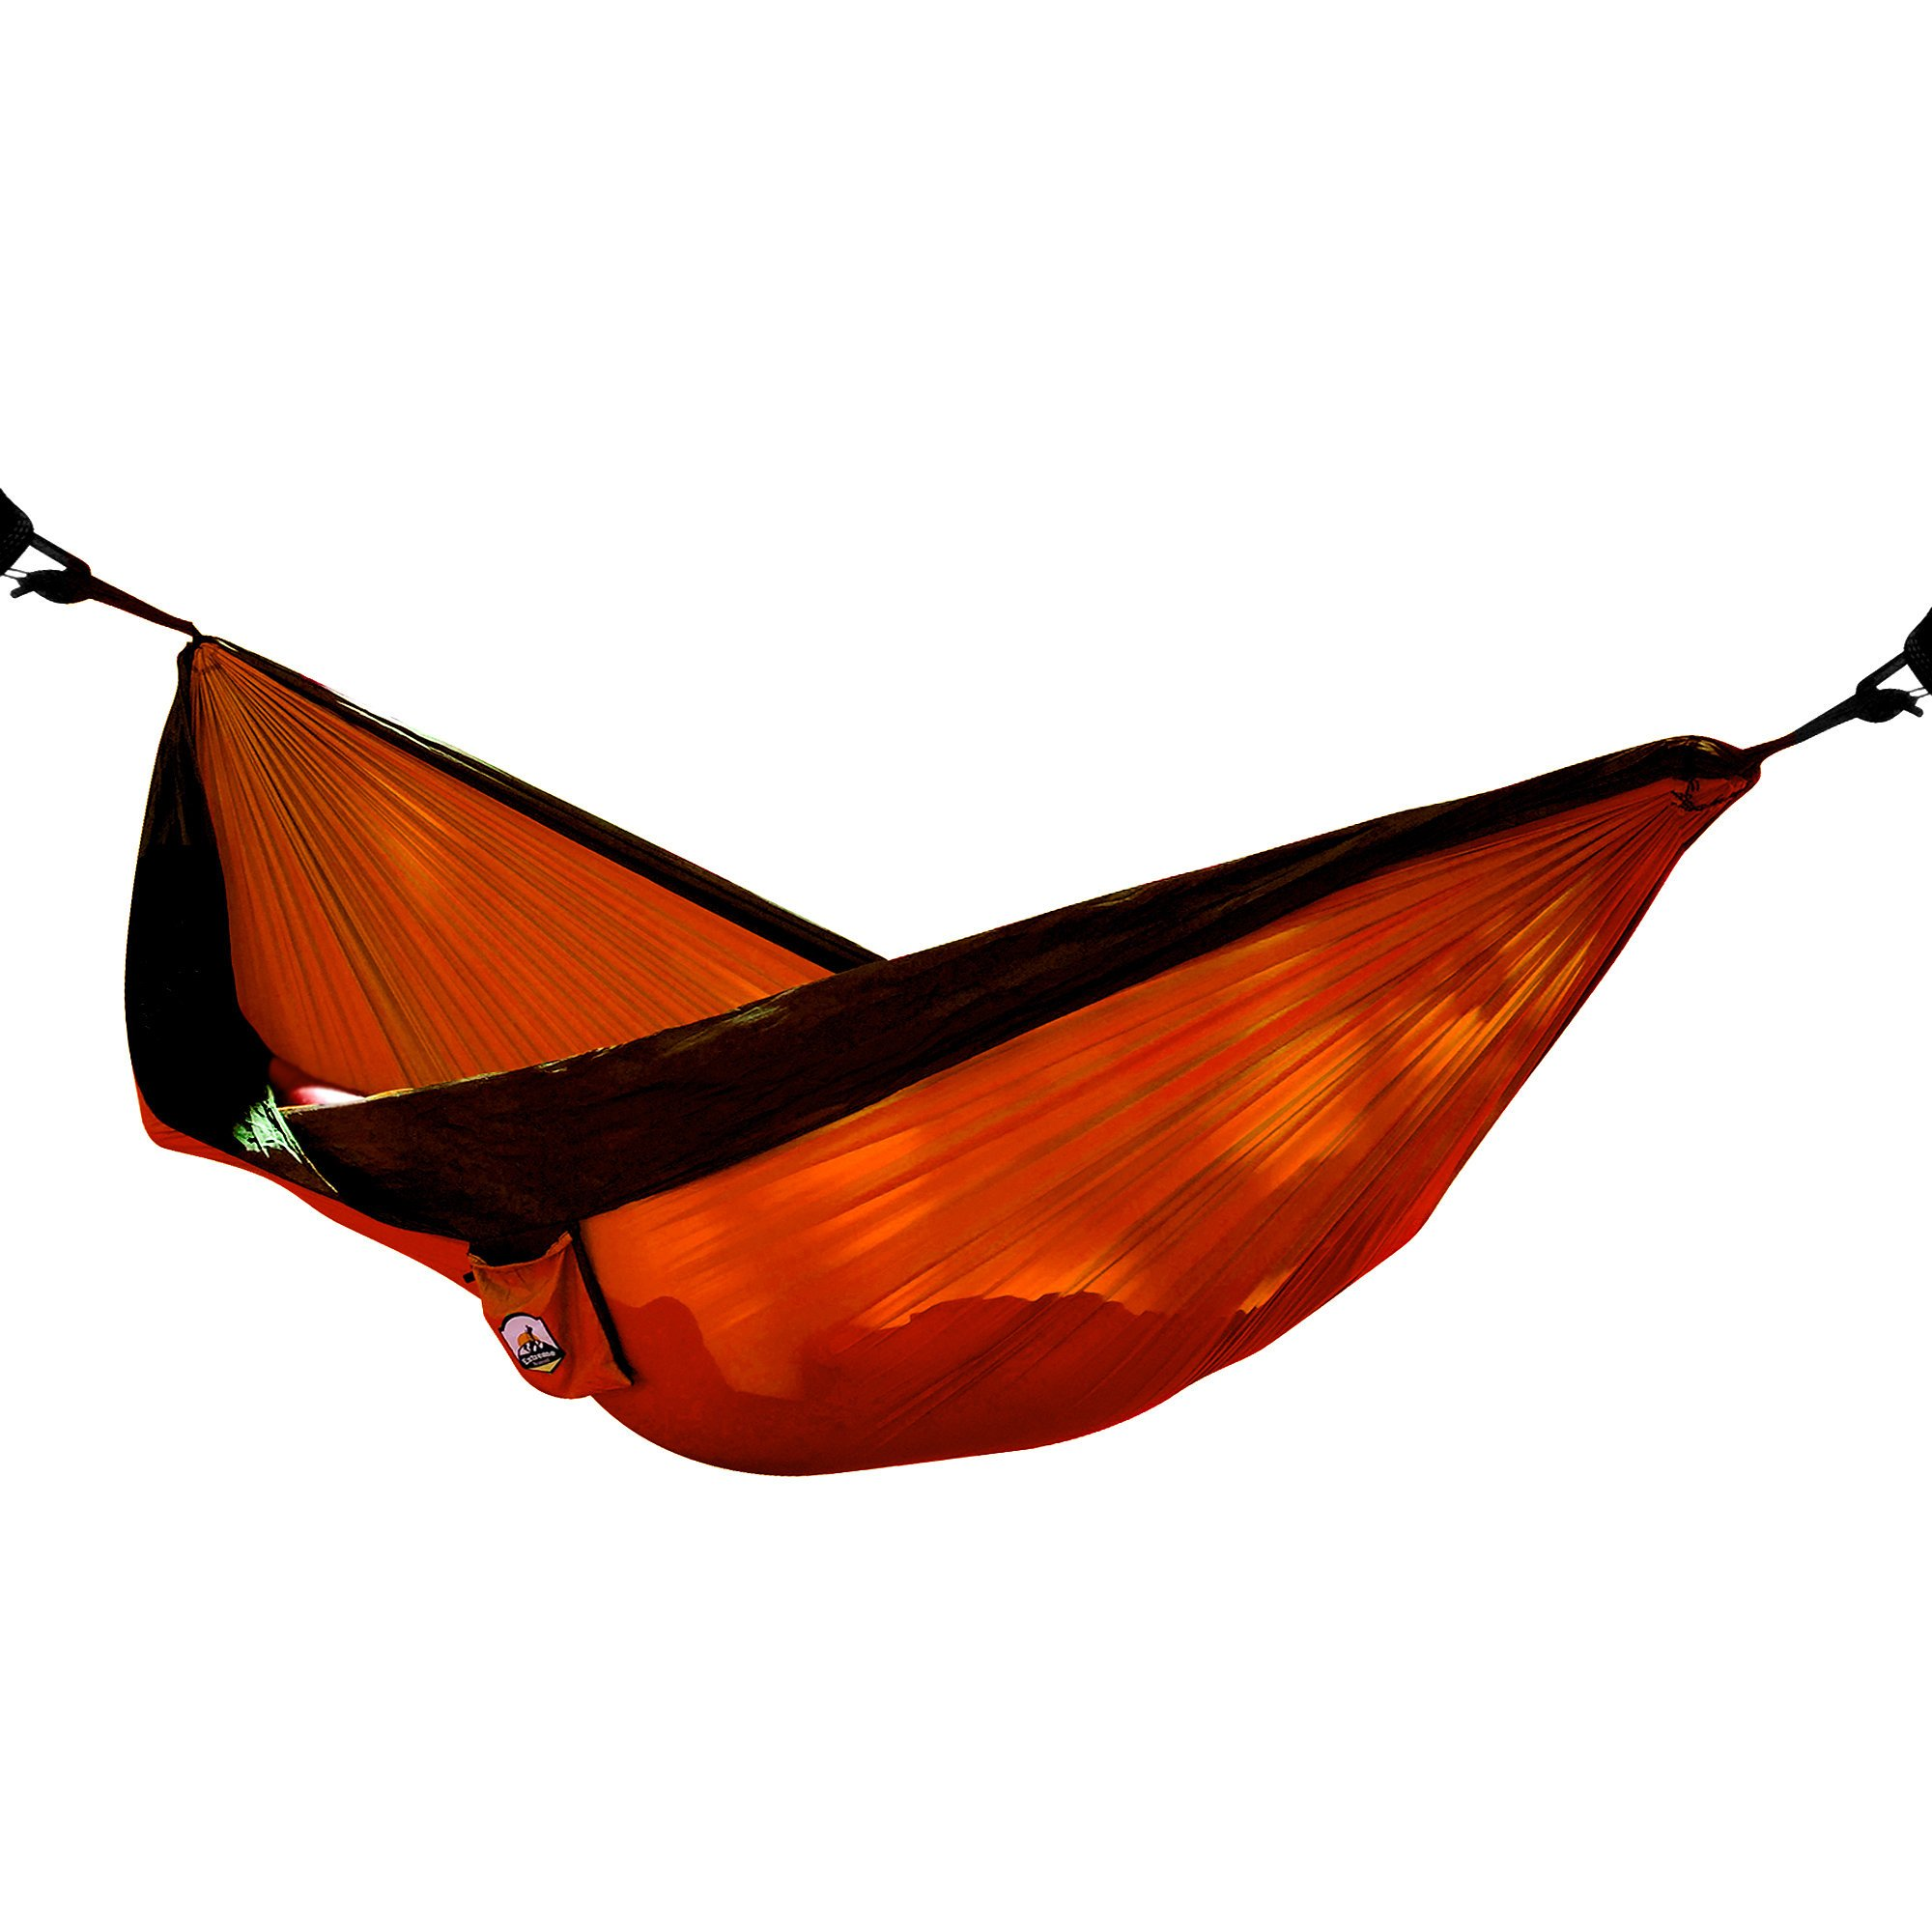 Texsport Wilderness Hammock Texsport Wilderness No See Um Mesh Hammock Texsport Wilderness